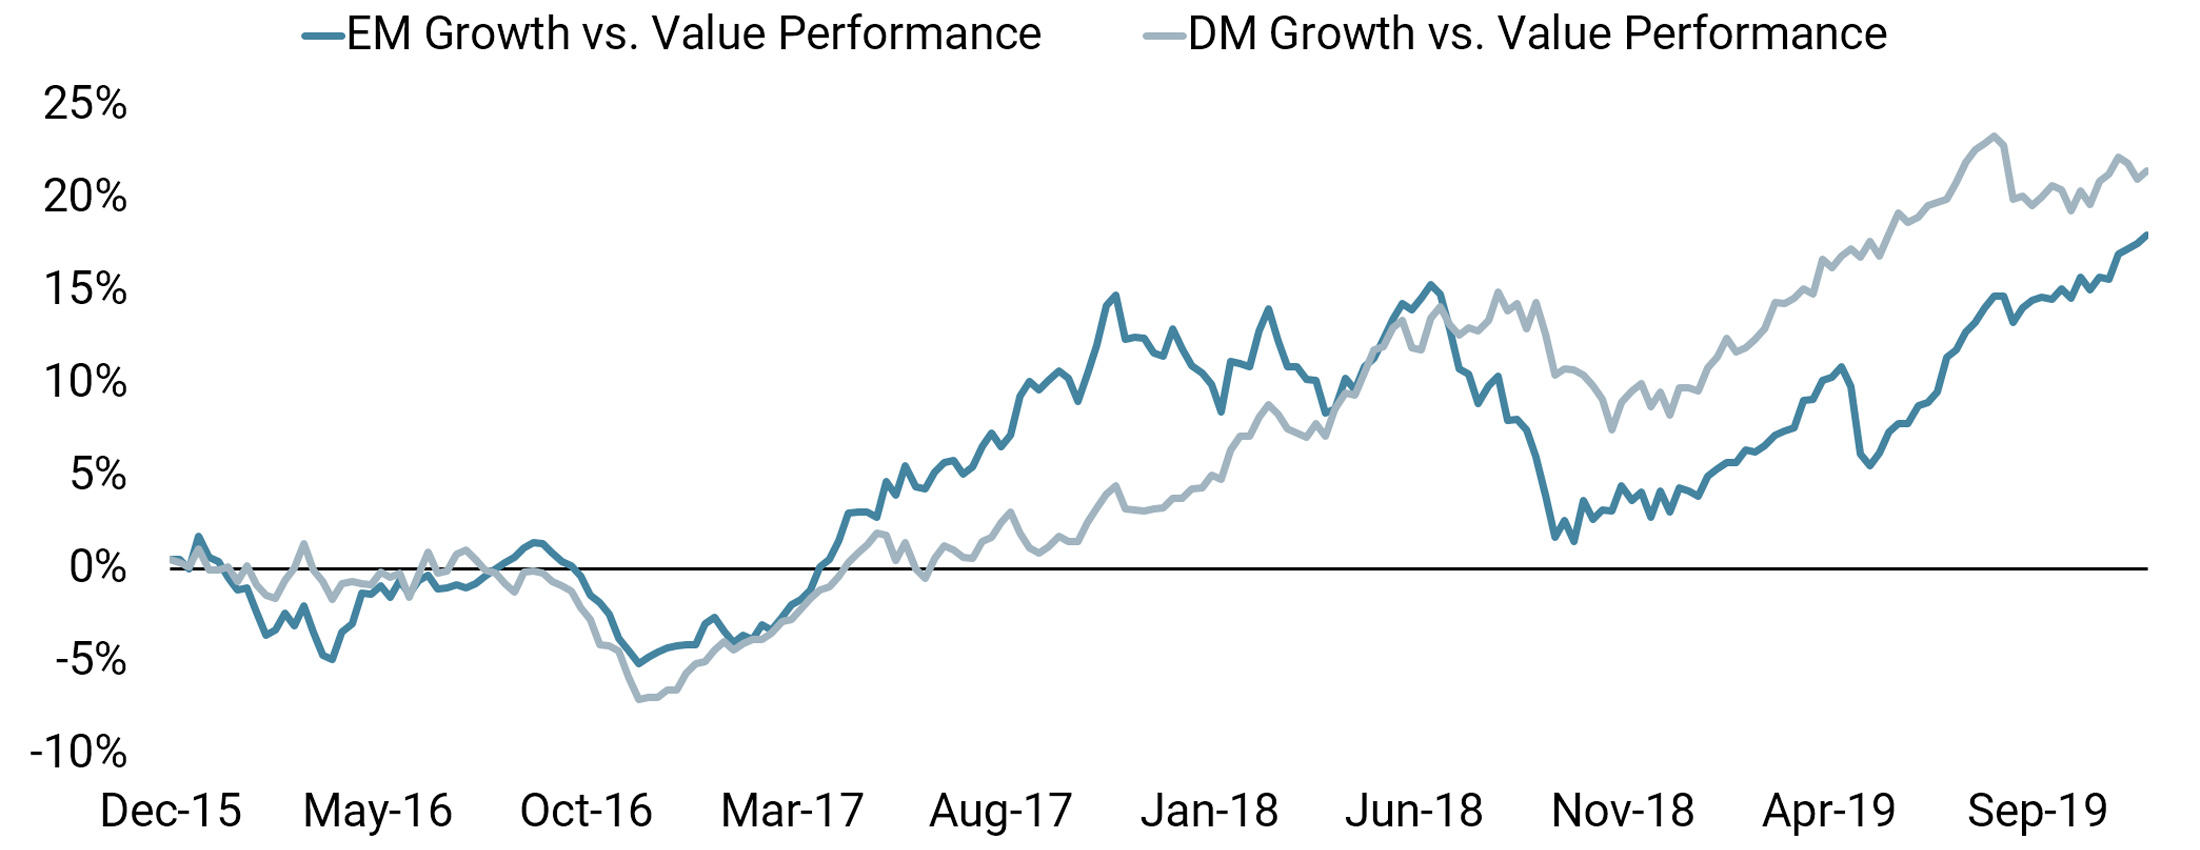 20200108 - COTD - DM Growth Stocks Are No Longer Outpacing Value - Web